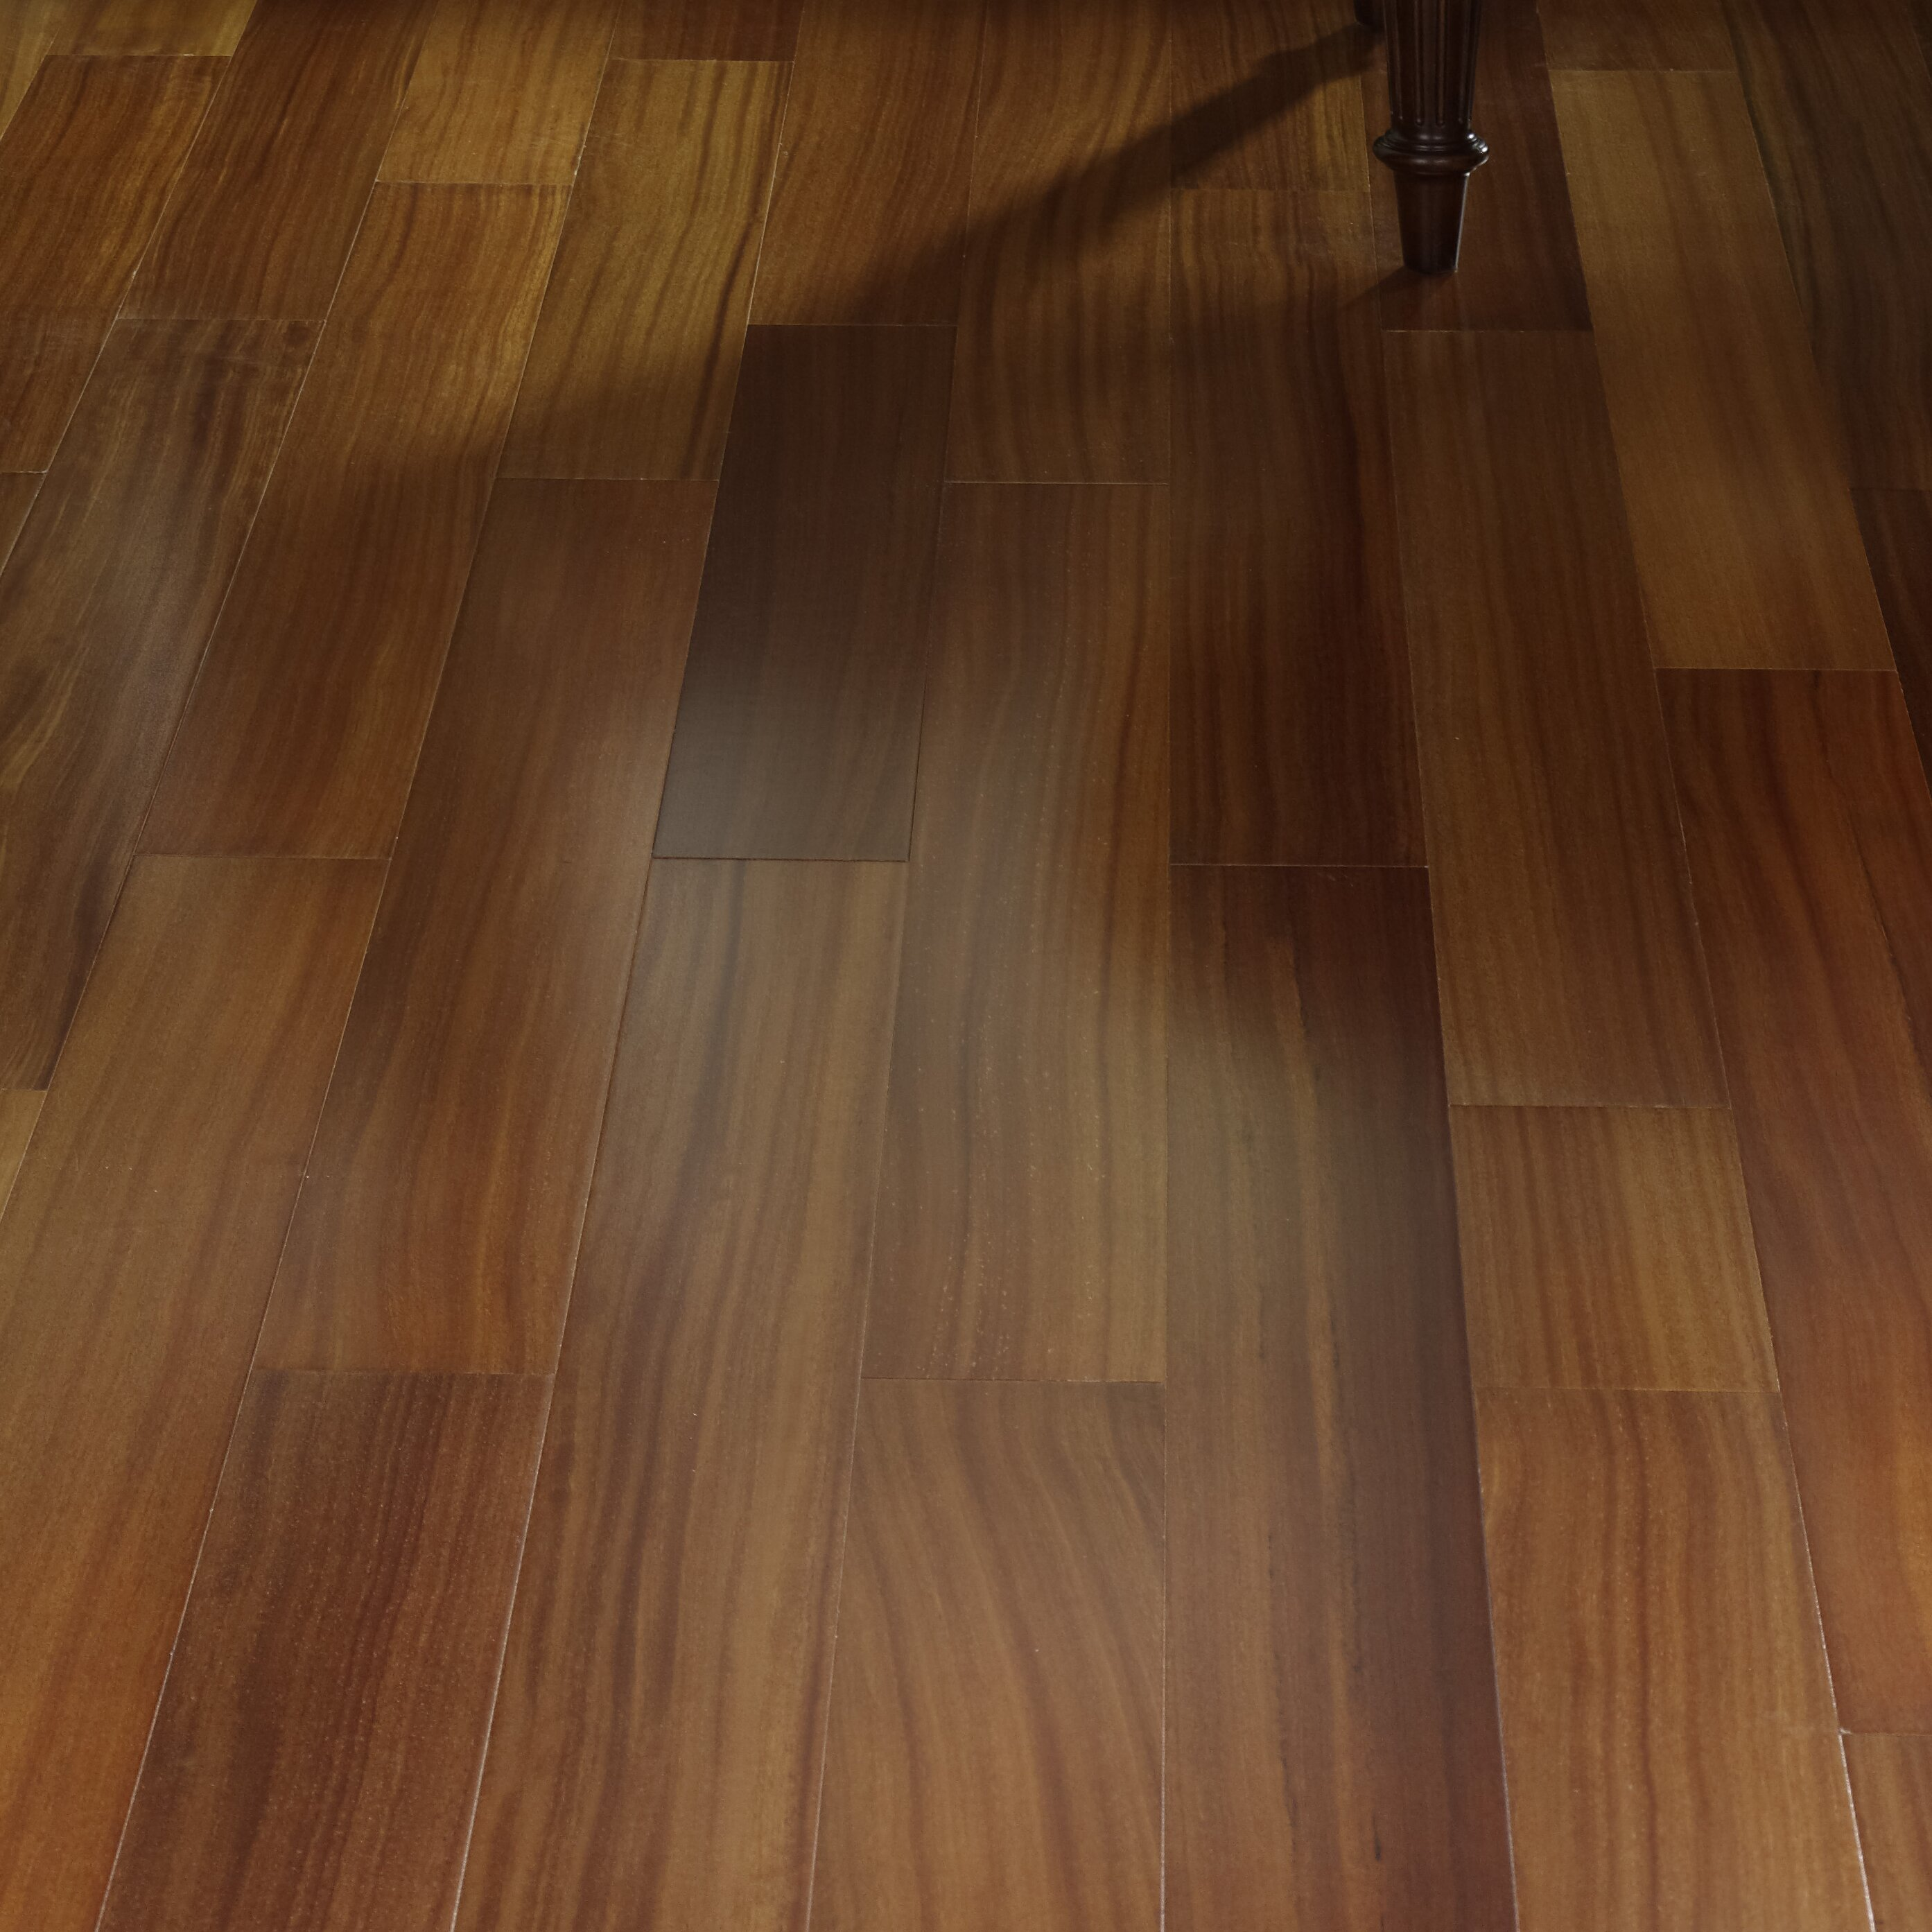 Easoon Usa 5 Engineered Brazilian Teak Hardwood Flooring